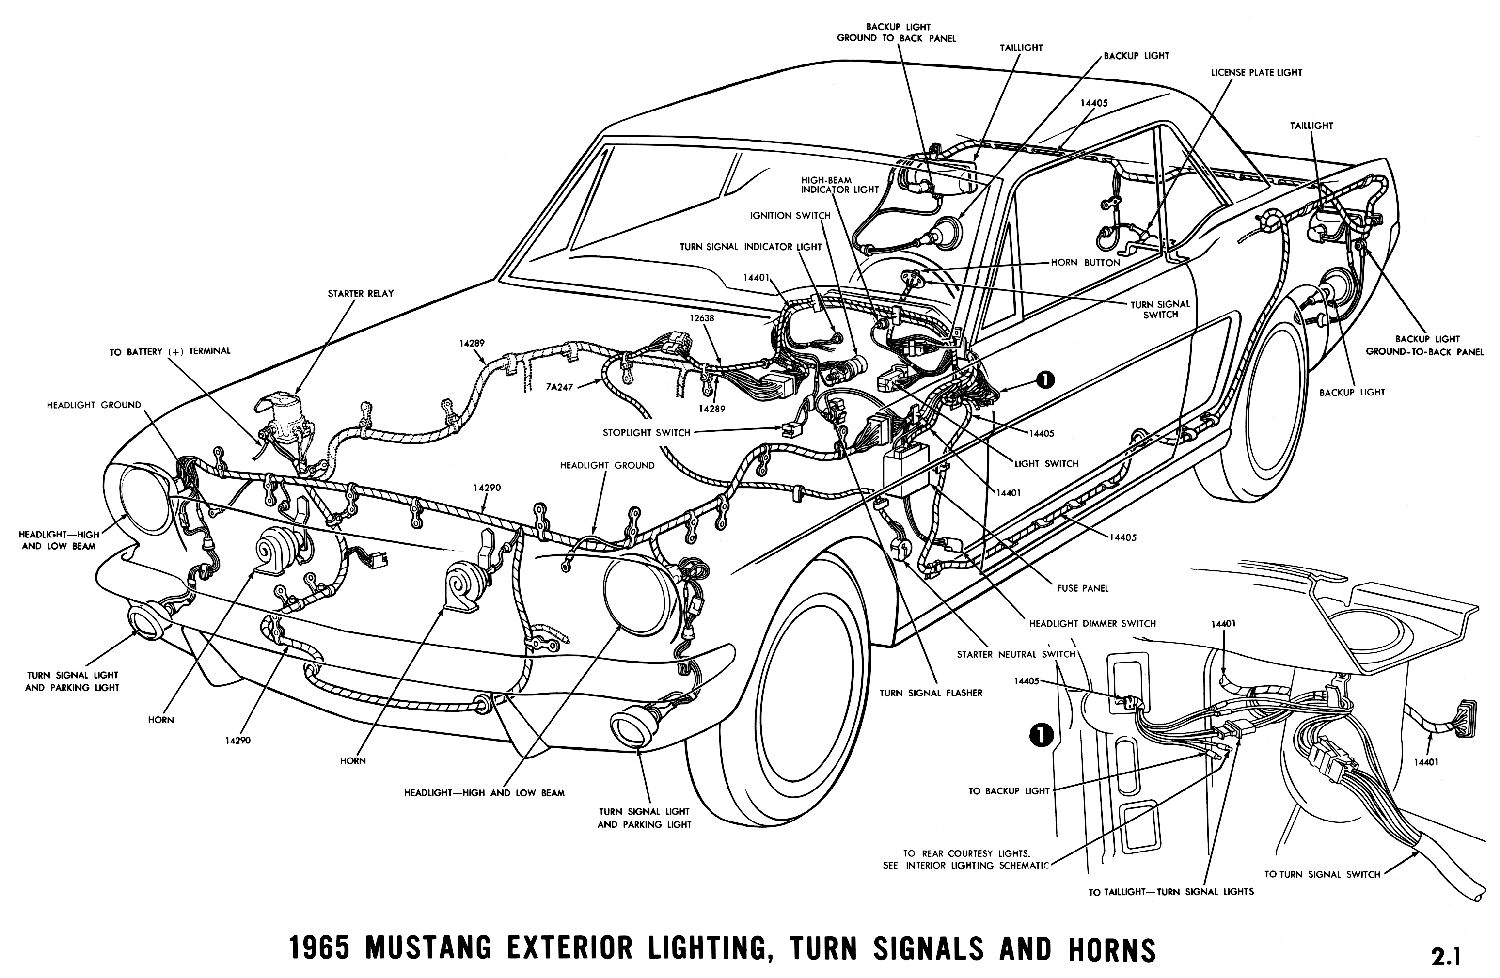 1965d 1965 mustang wiring diagrams average joe restoration 1965 mustang alternator wiring diagram at bakdesigns.co